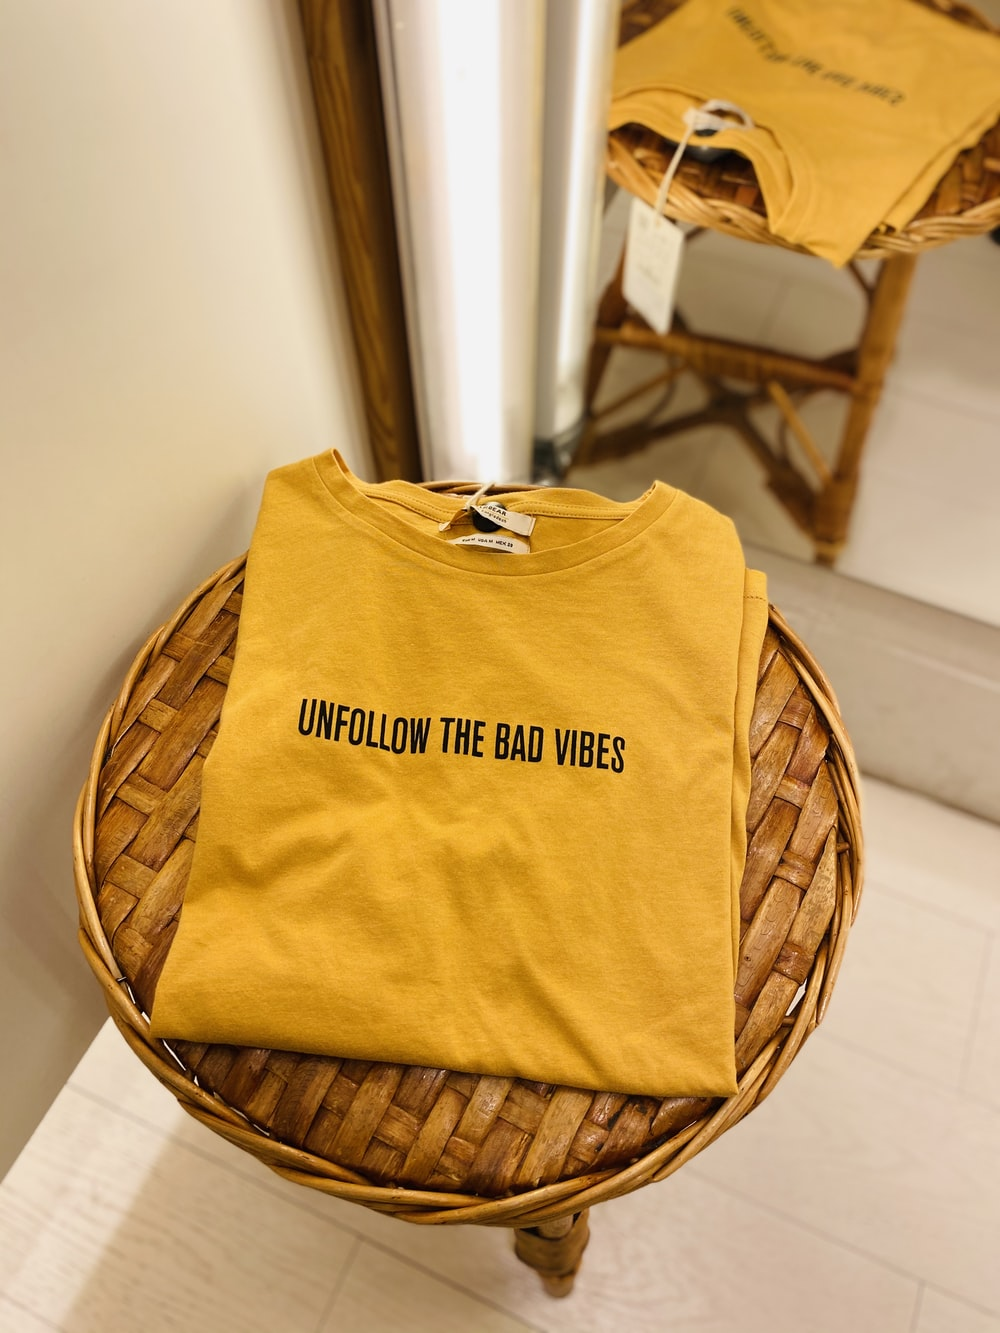 yellow and black crew neck shirt on brown woven chair